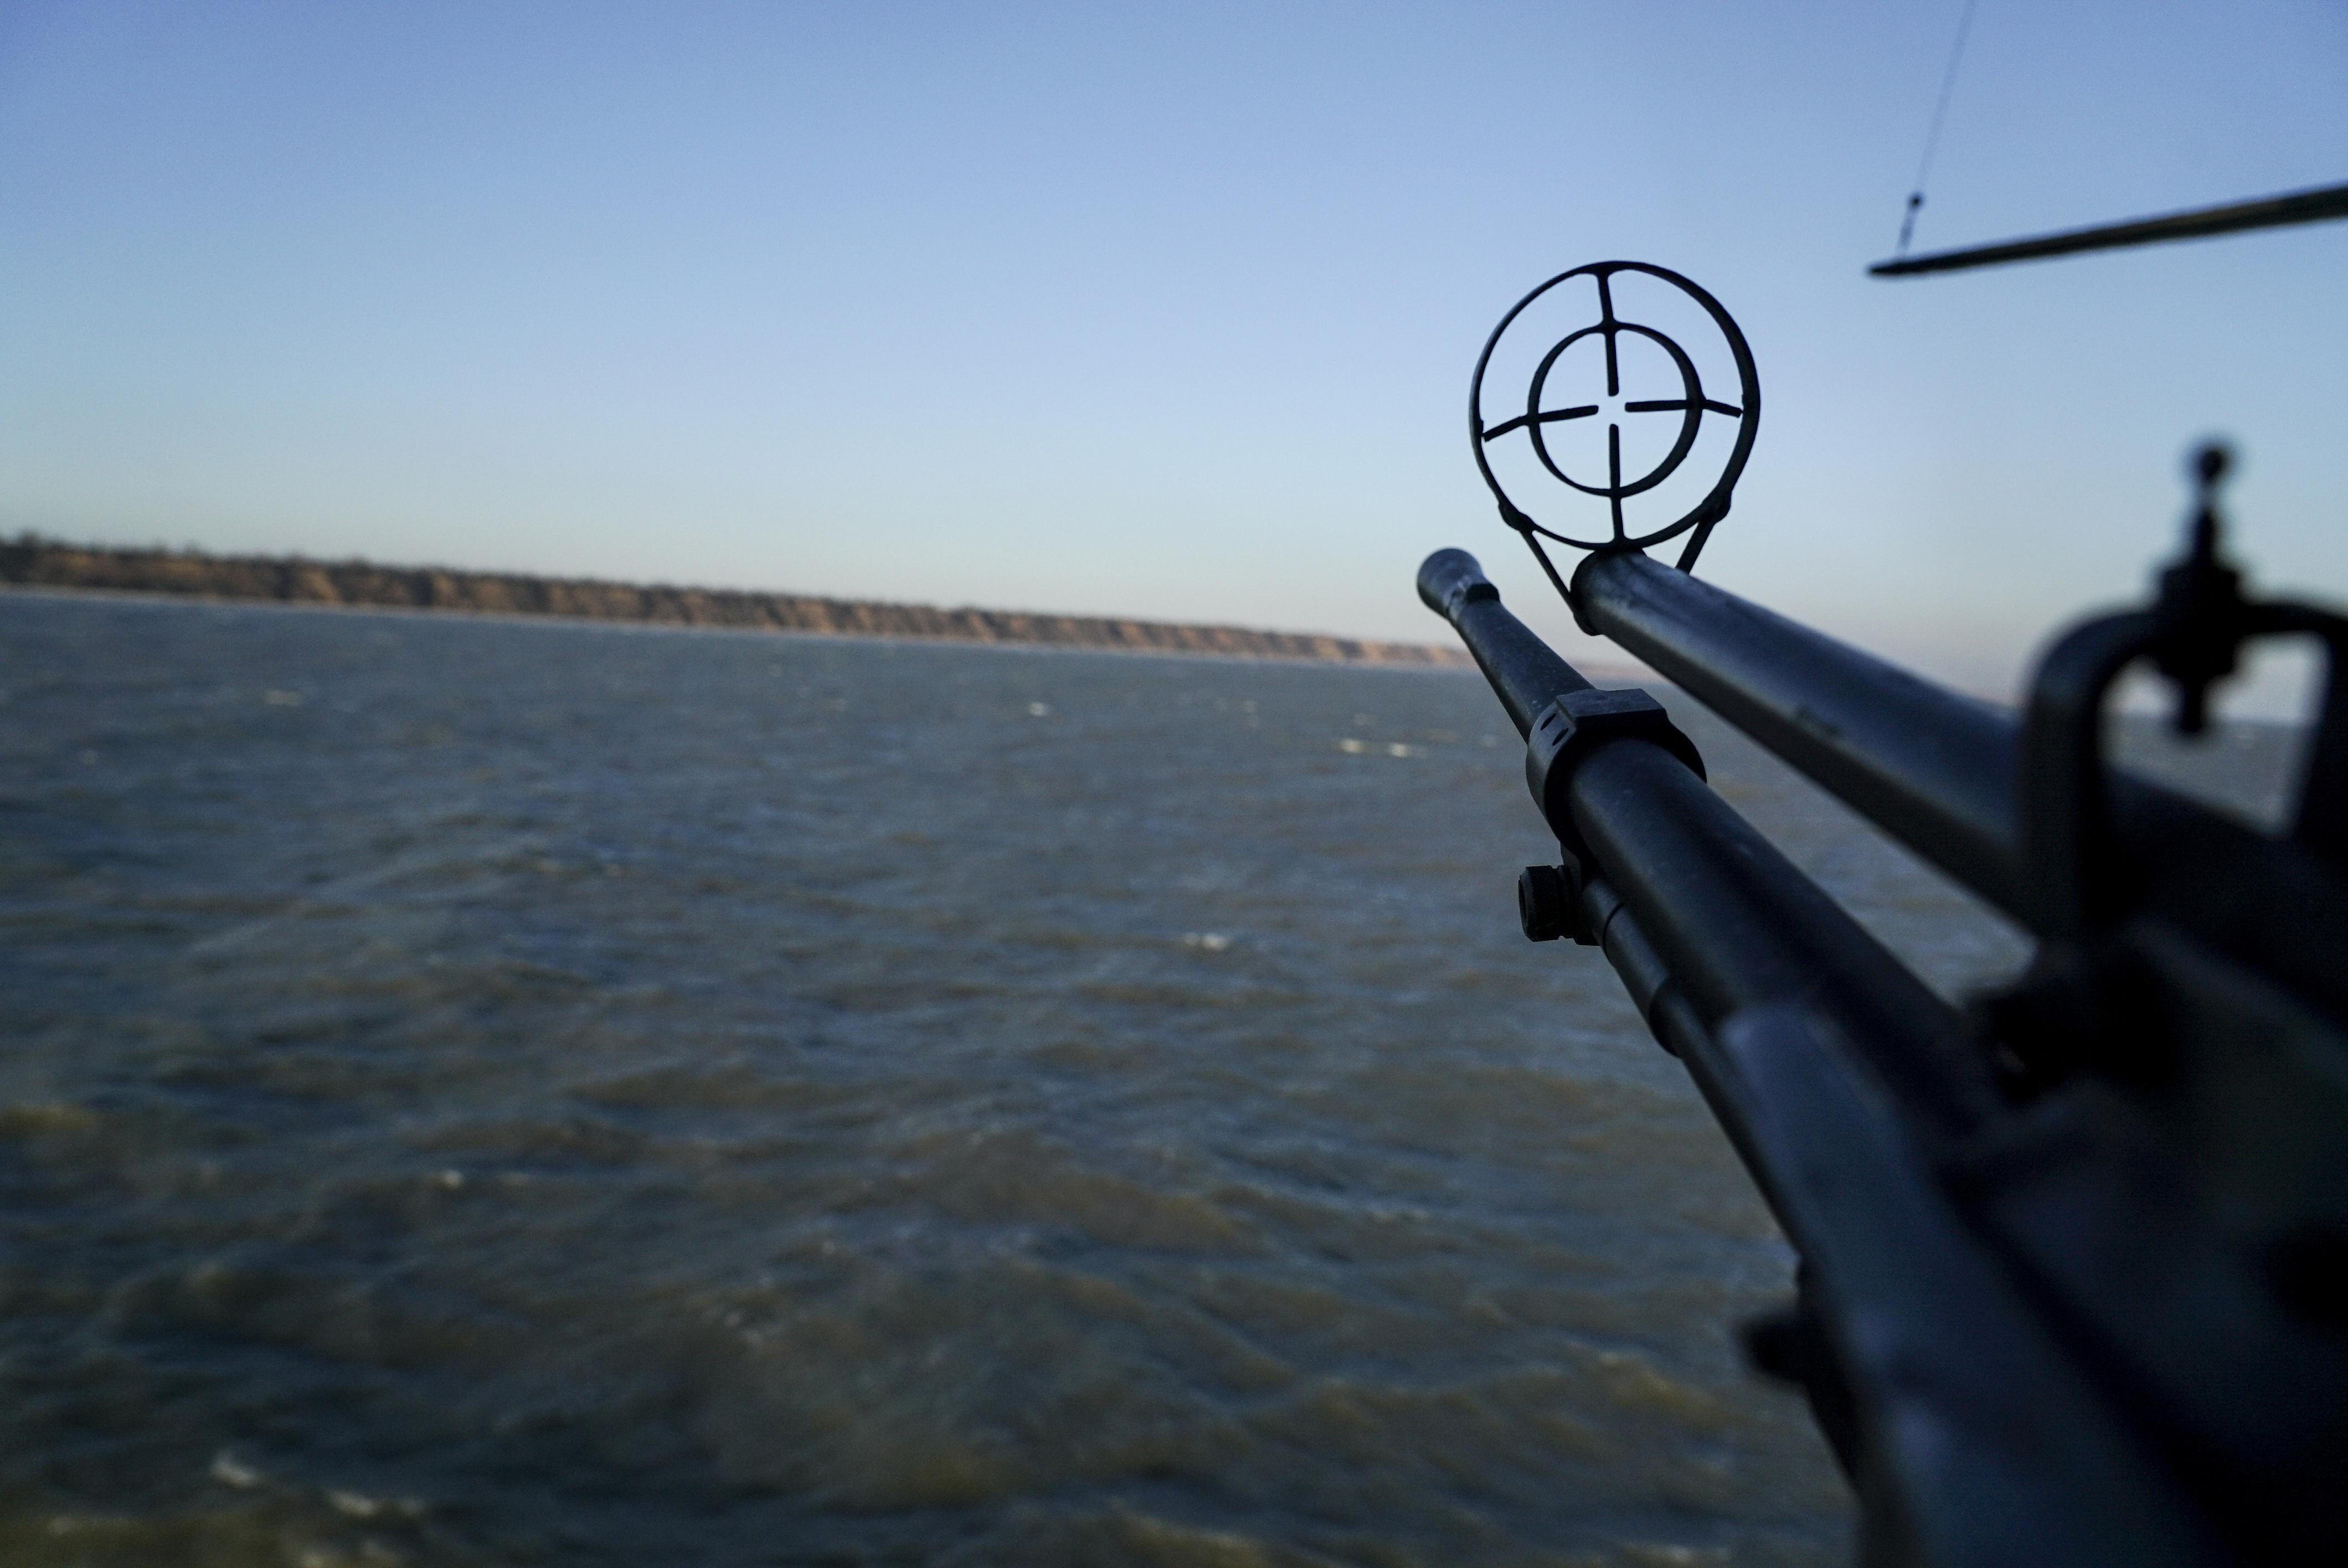 A helicopter's machine gun is turned toward the sea shore during patrol near Urzuf, south coast of Azov sea, eastern Ukraine, Thursday, Nov. 29, 2018. Ukraine put its military forces on high combat alert and announced martial law this week after Russian border guards fired on and seized three Ukrainian ships in the Black Sea. (AP Photo/Evgeniy Maloletka)